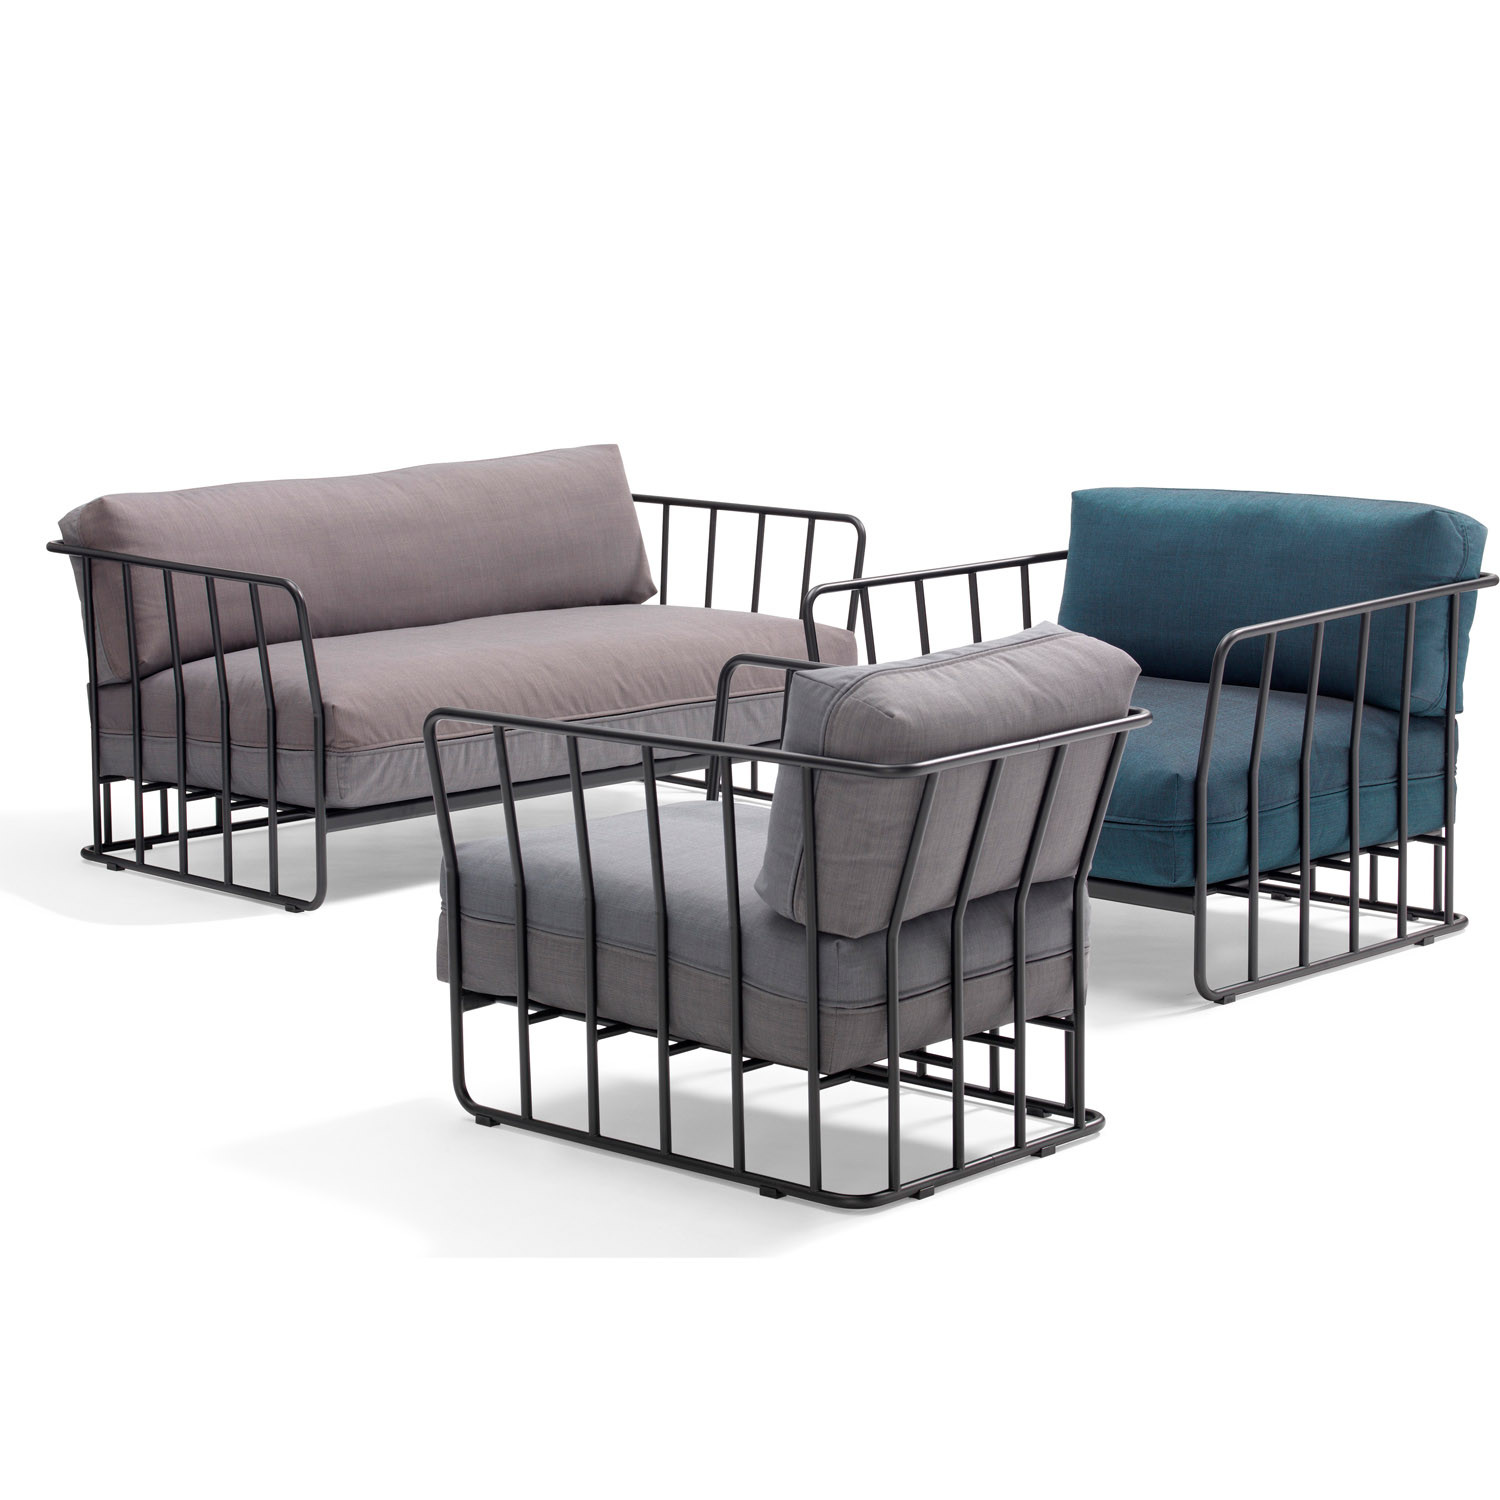 Code 27-B Modular Soft Seating